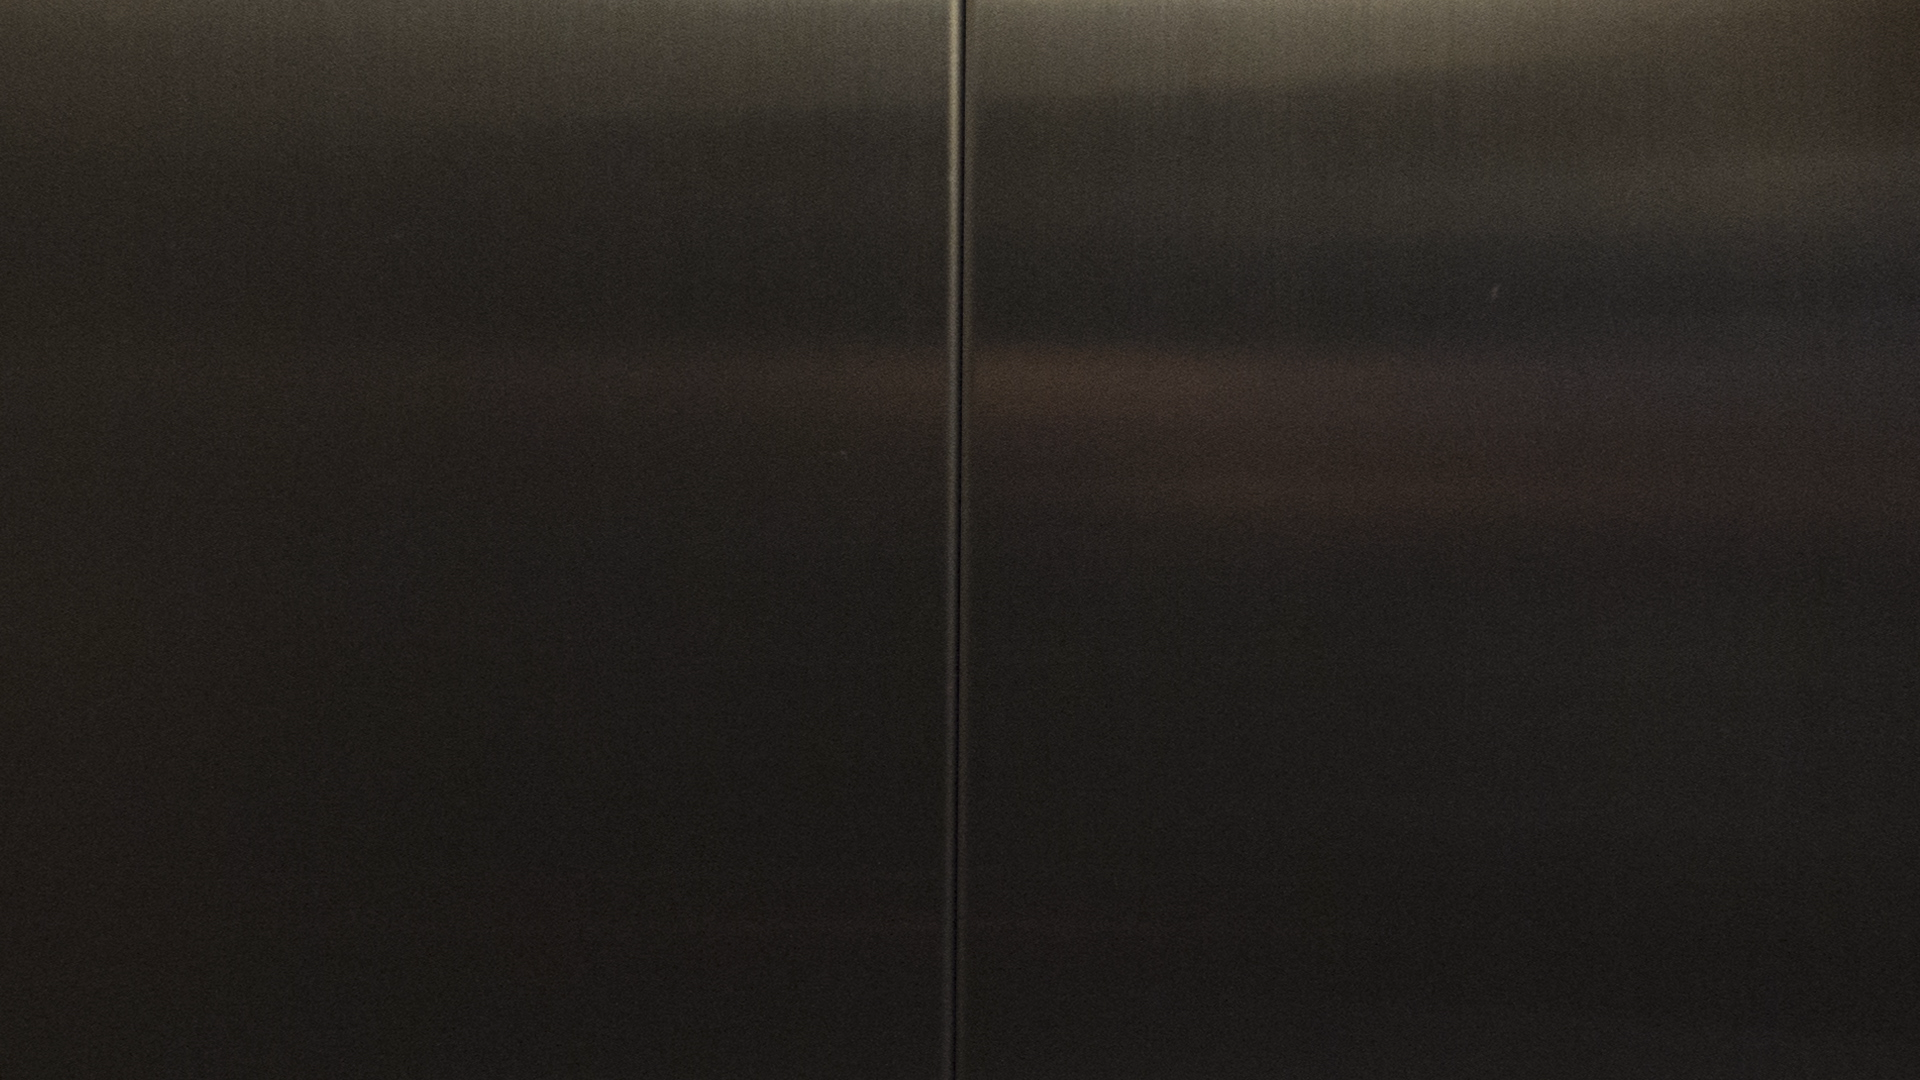 Liftscapes Enhance your lift elevator experience